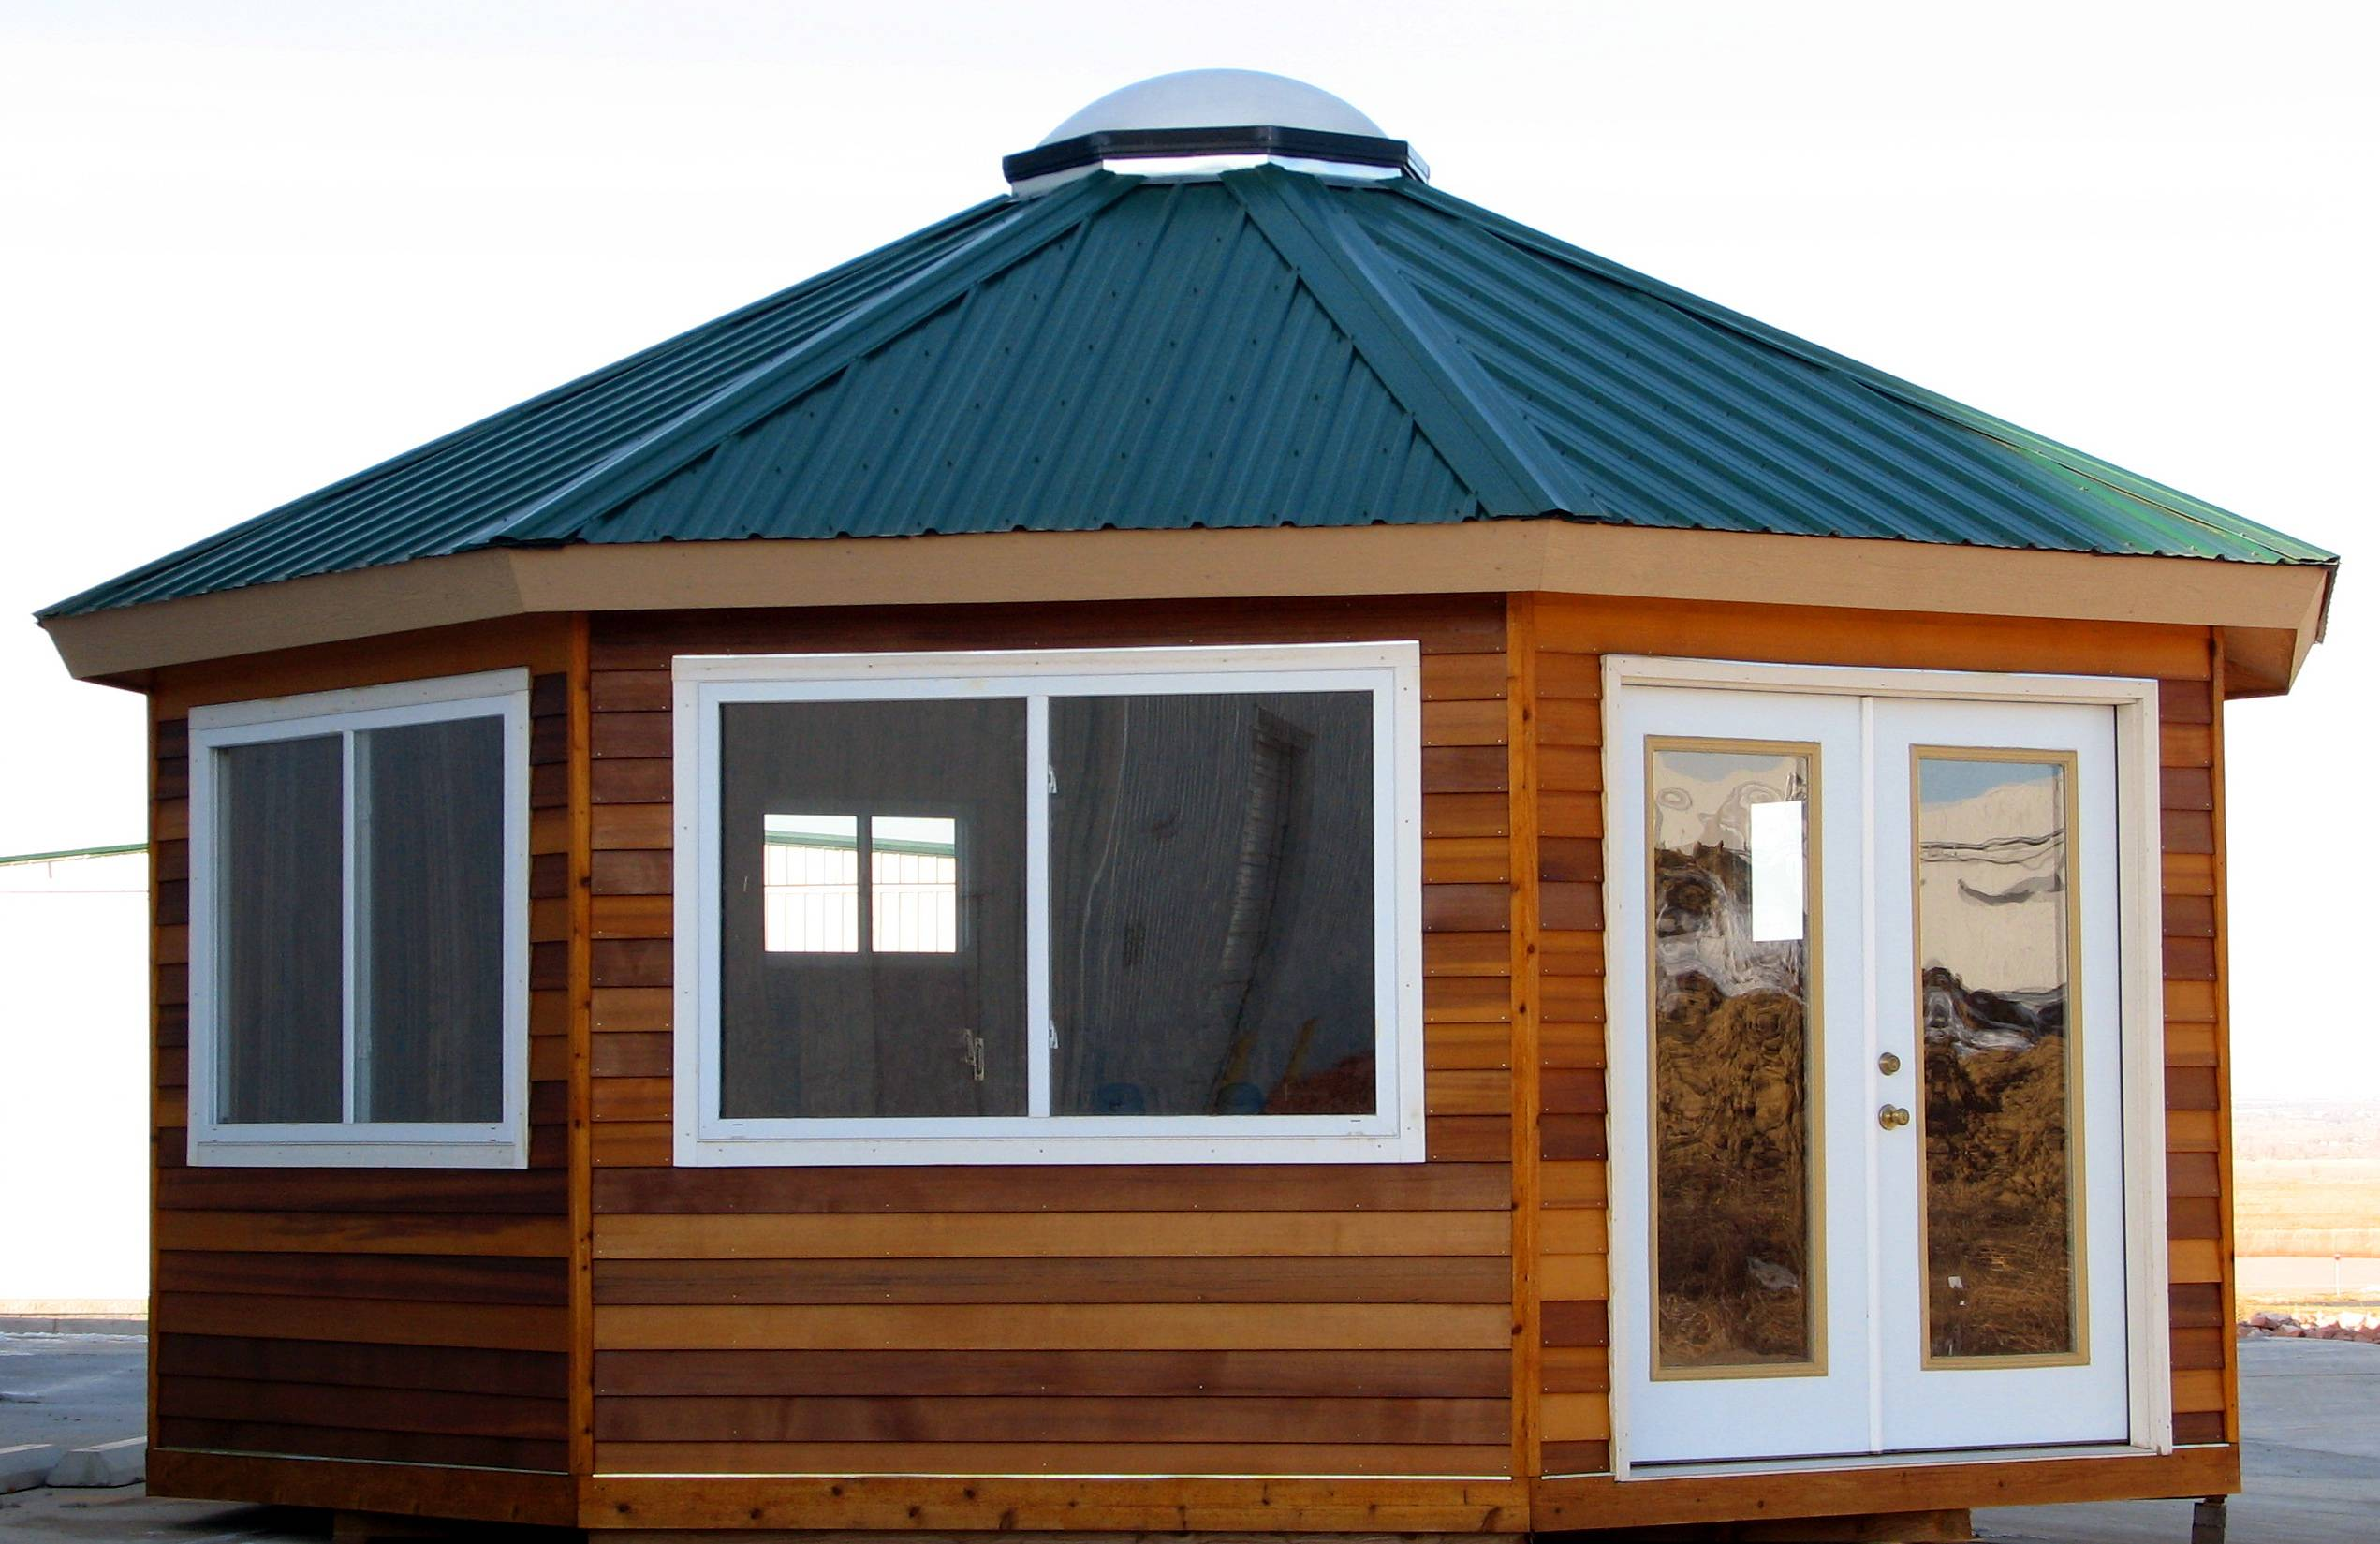 Magnificent Small Wooden House Plans Largest Home Design Picture Inspirations Pitcheantrous